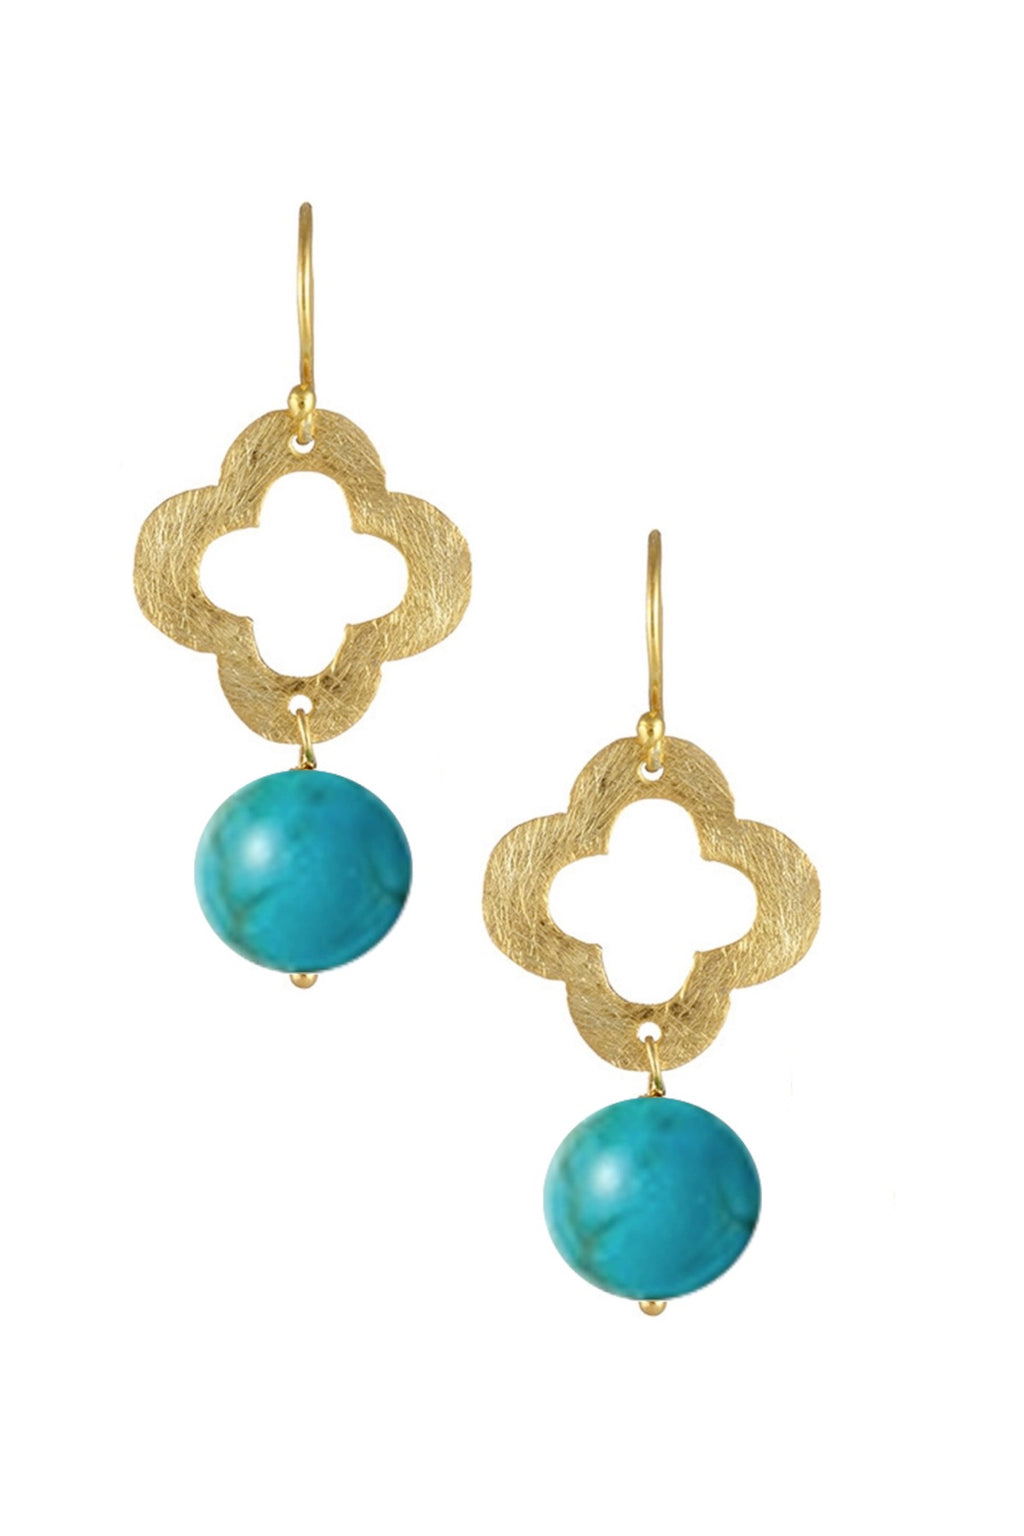 18k Gold Plated Clover & Turquoise Drop Earrings